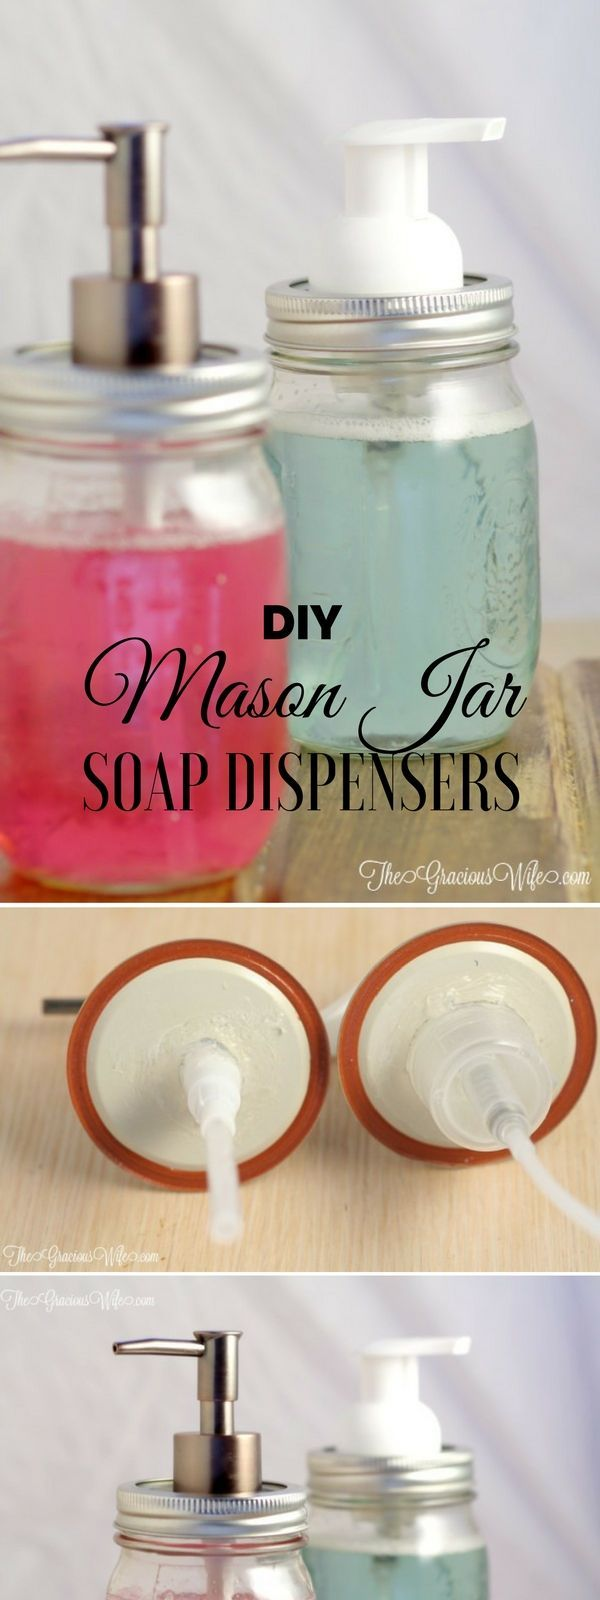 Check out the tutorial: #DIY Mason Jar Soap Dispensers @Industry Standard Design